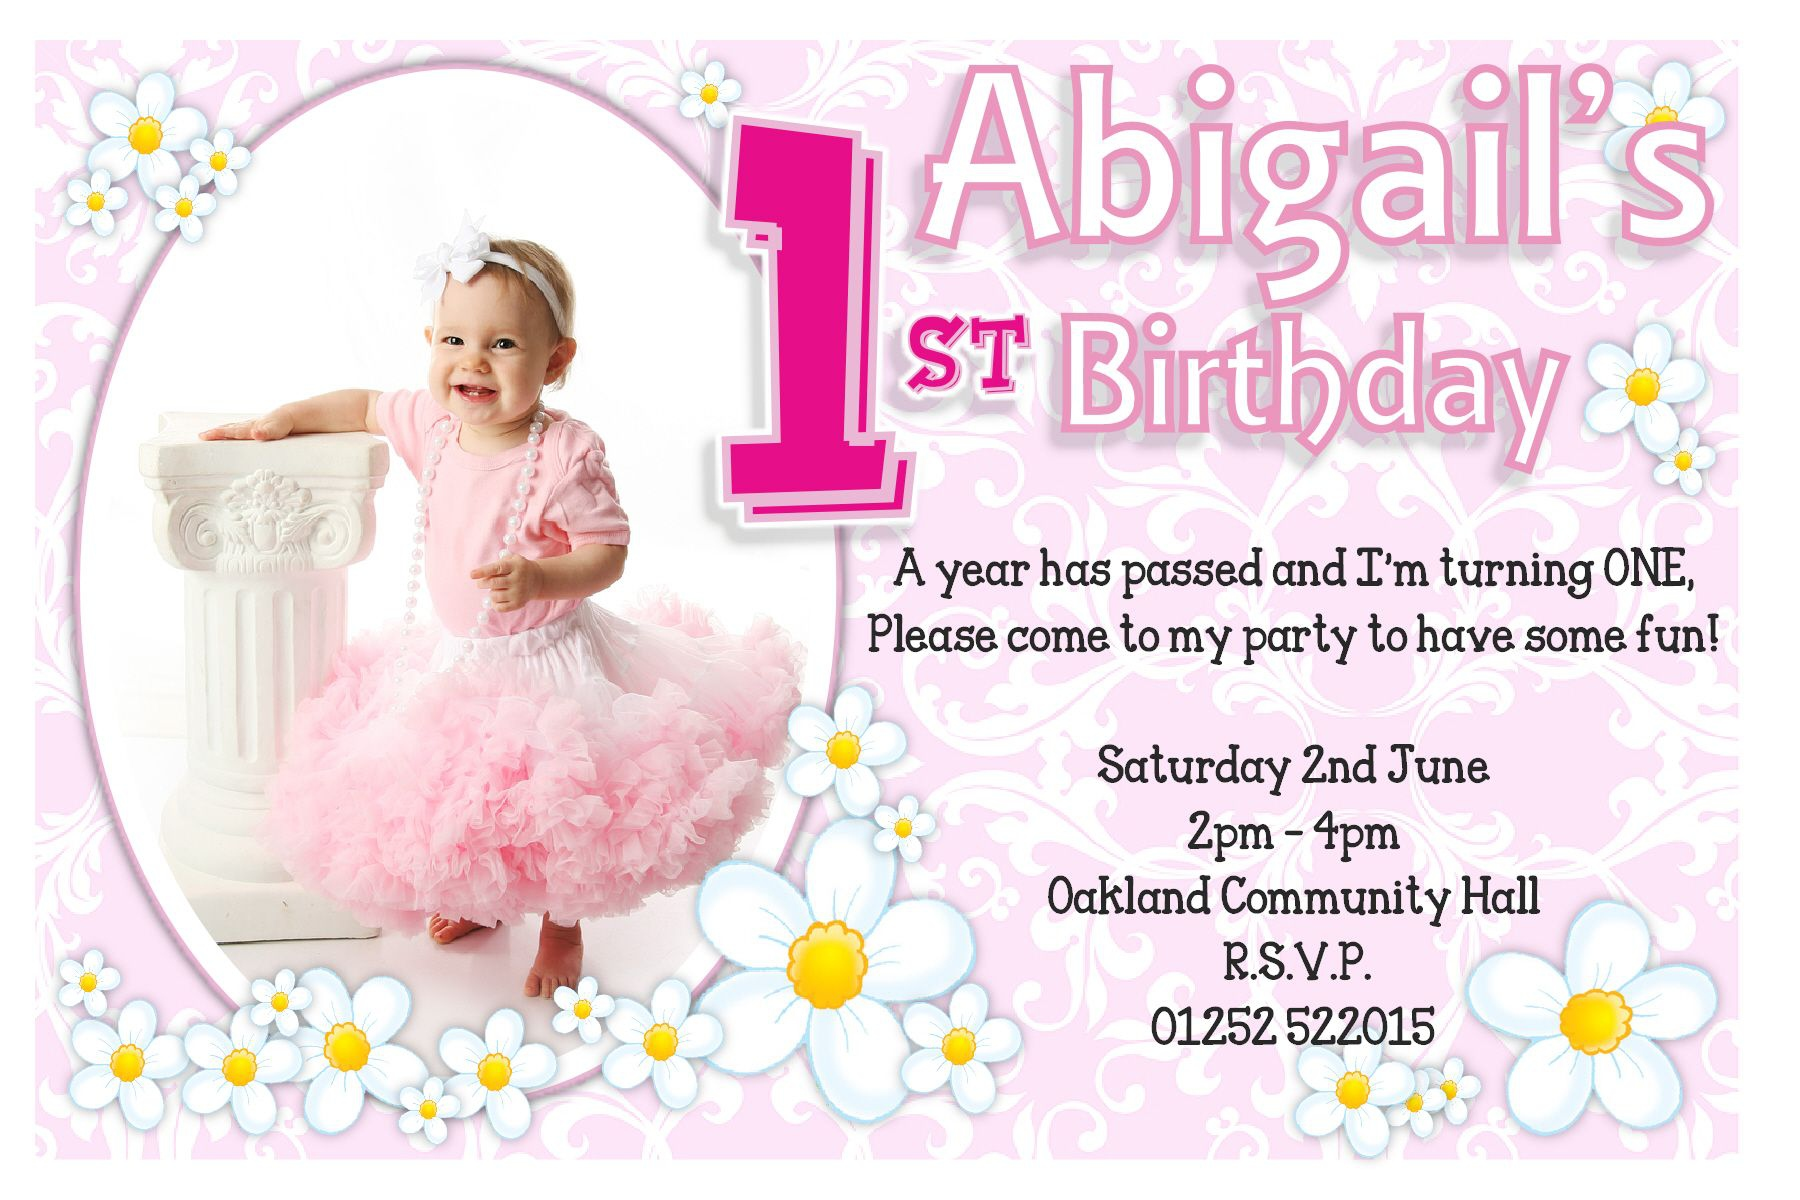 1 Year Old Birthday Invitation Templates Free 1St Sample